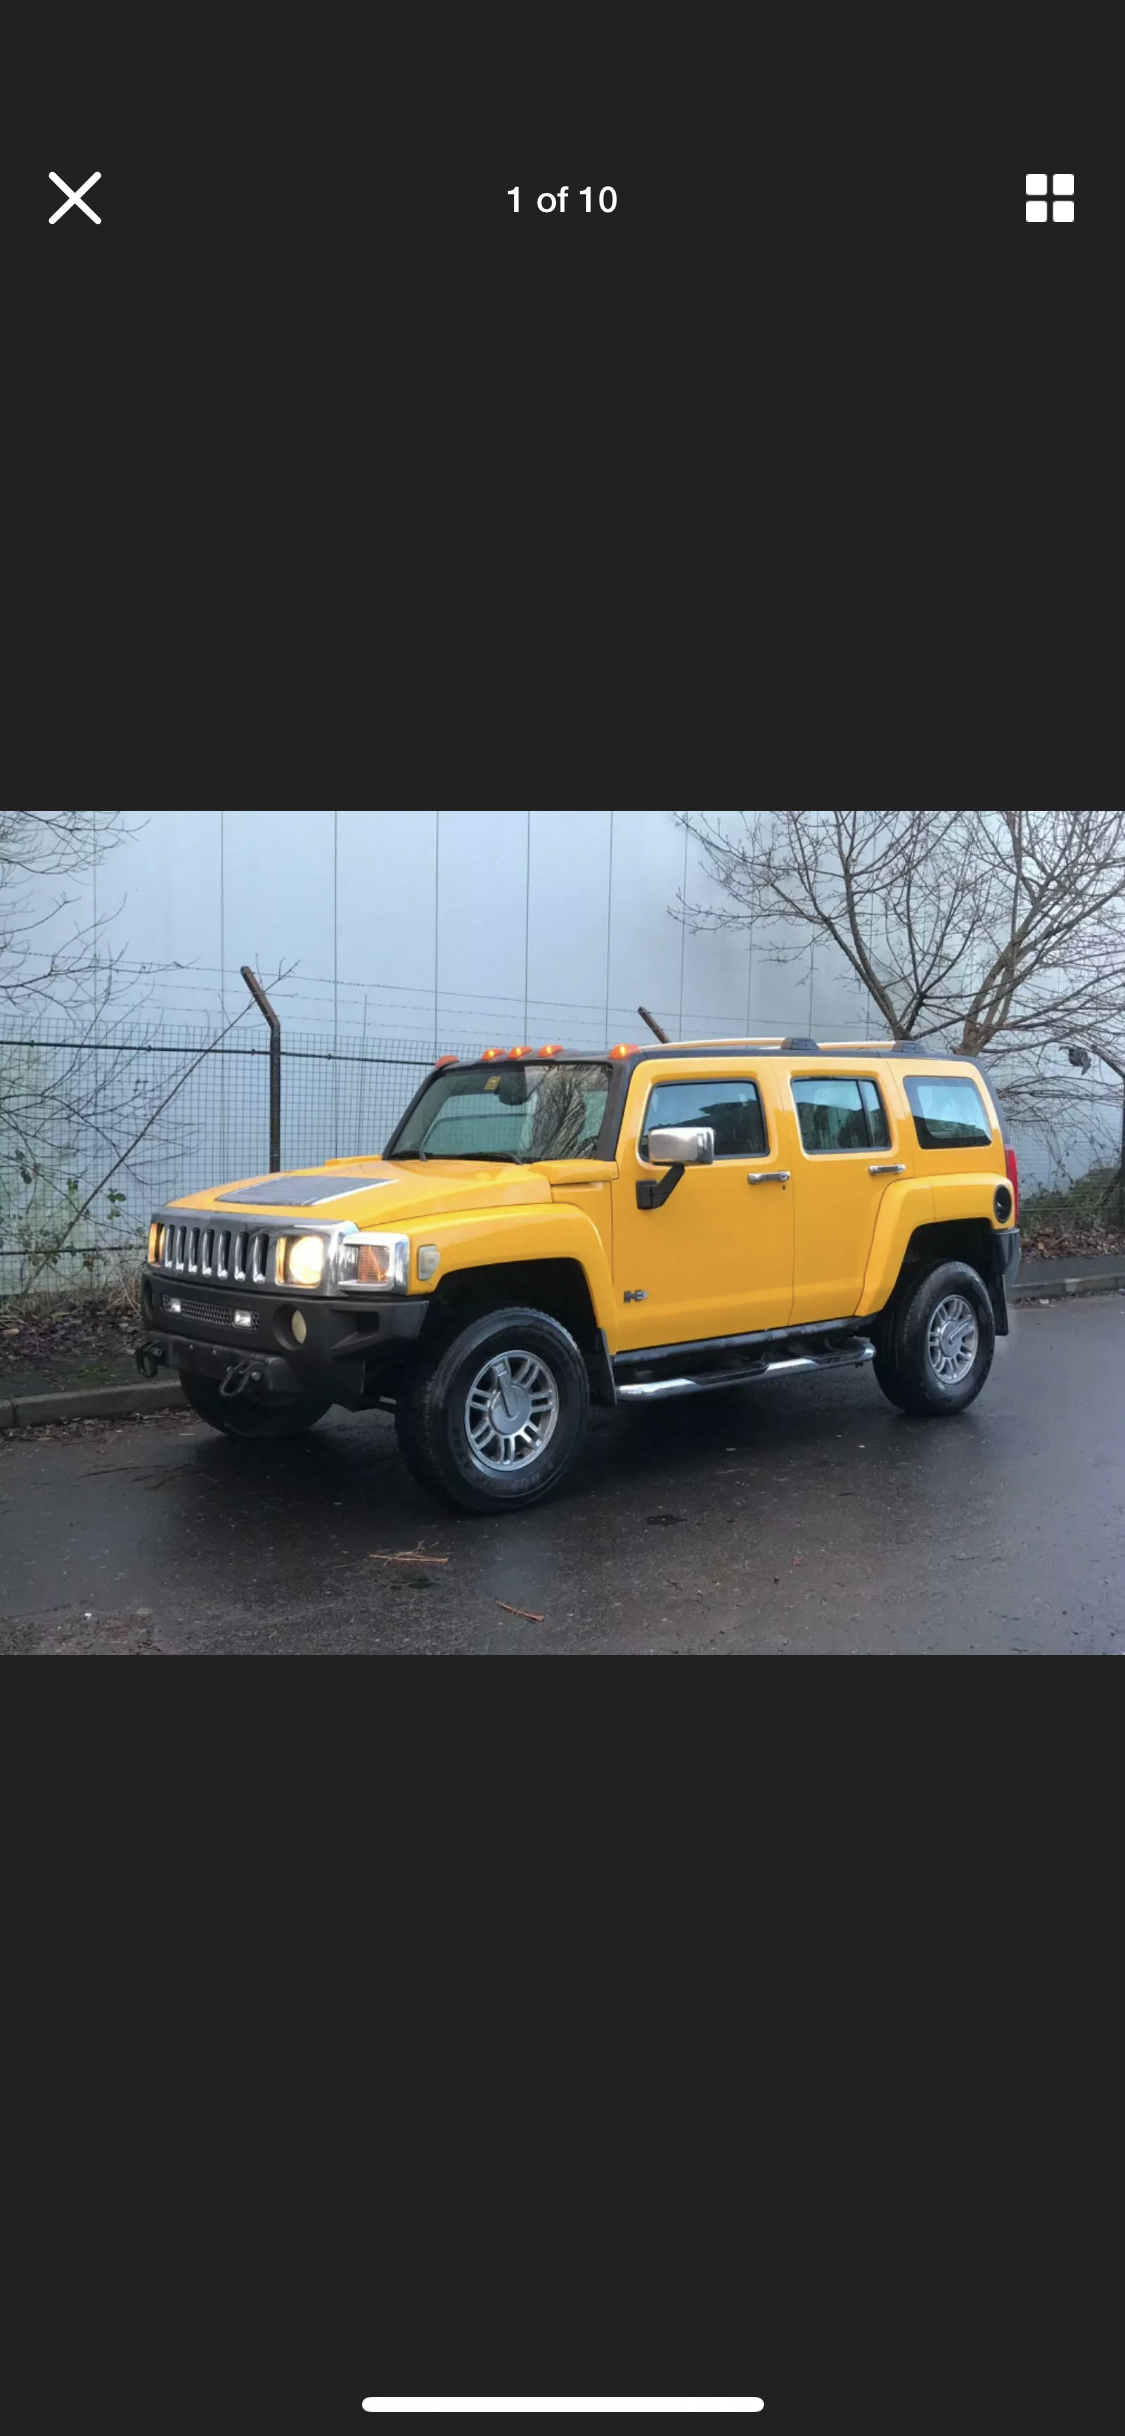 2007 HUMMER H3 3.5 LEFT HAND DRIVE YELLOW MODIFIED IMPORT For Sale (picture 1 of 6)